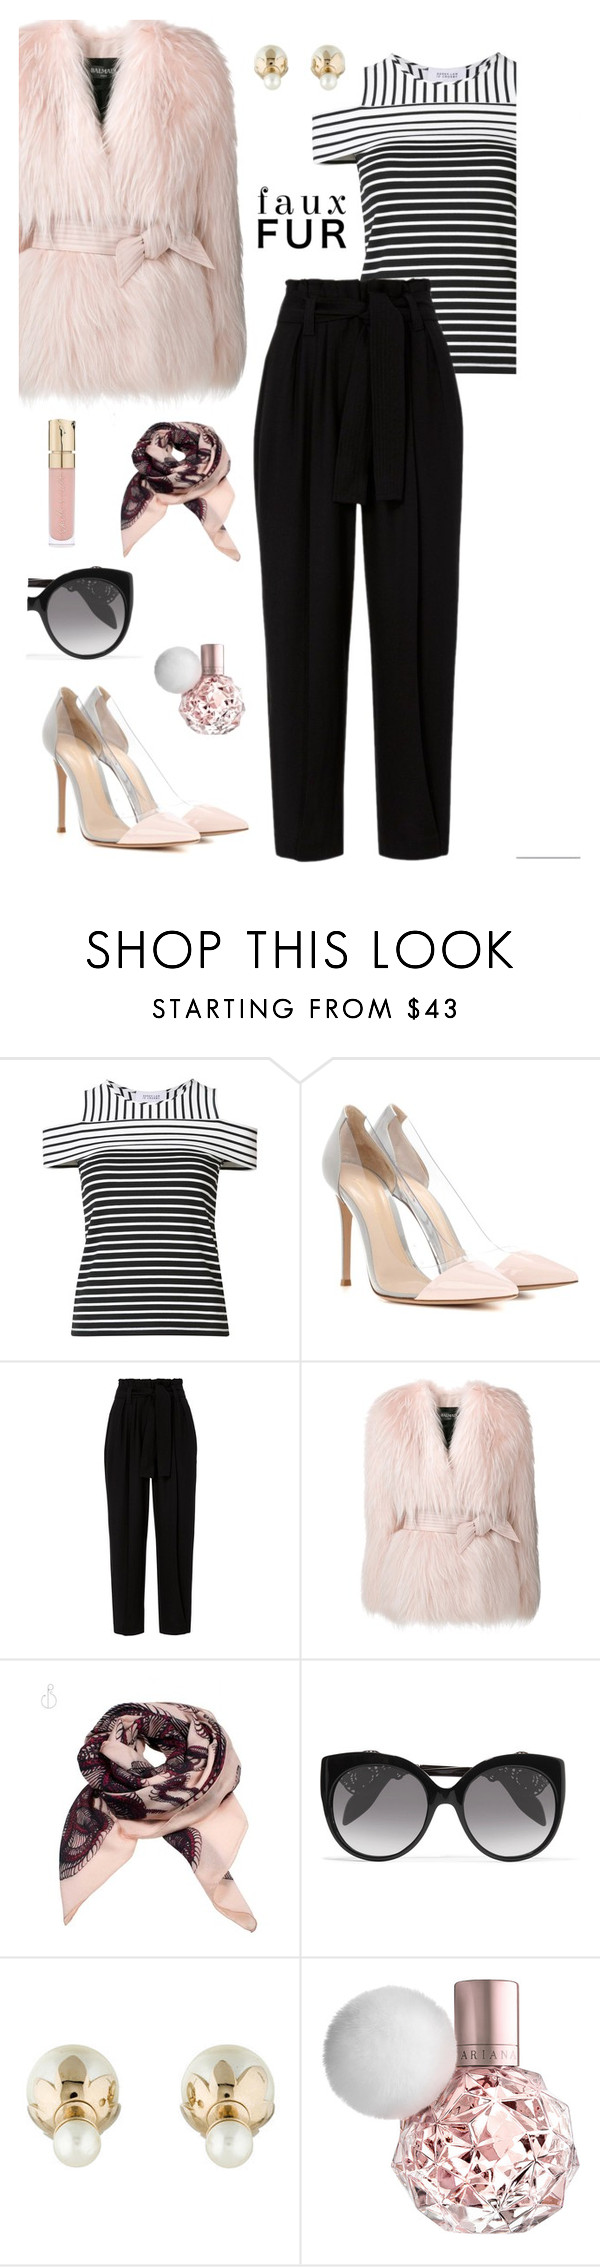 """""""Untitled #408"""" by maylamartha on Polyvore featuring 10 Crosby Derek Lam, Gianvito Rossi, A.L.C., Balmain, White Label, Alexander McQueen, Christian Dior and Smith & Cult"""